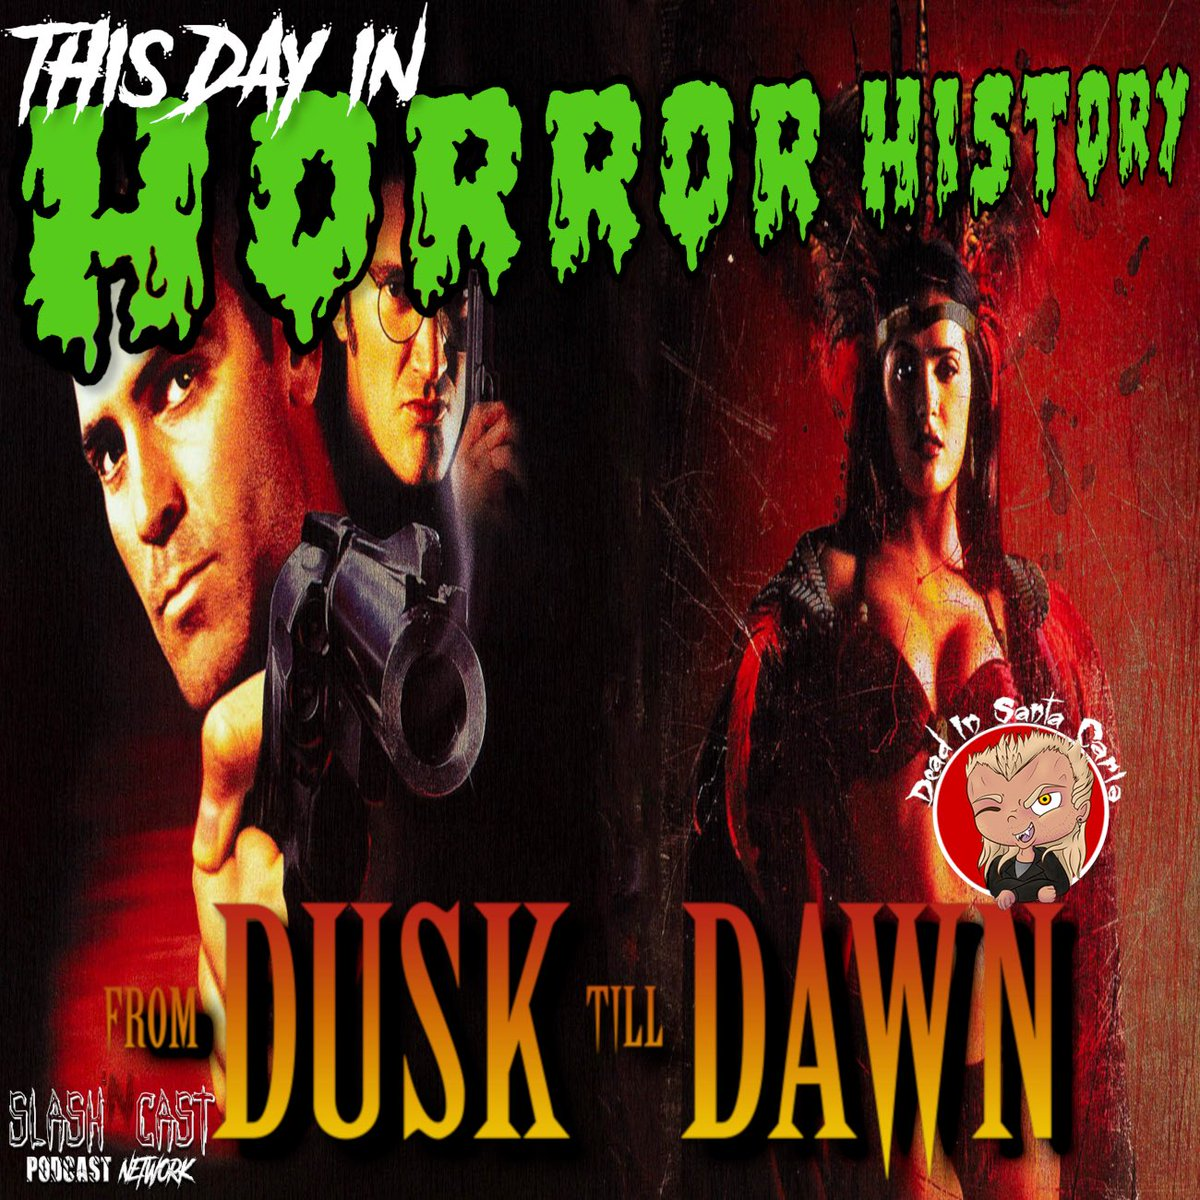 #OnThisDay in 1996, #FromDuskTillDawn debuted in theaters! Happy 25th birthday, PU**Y LOVERS! 🩸🩸🩸🩸